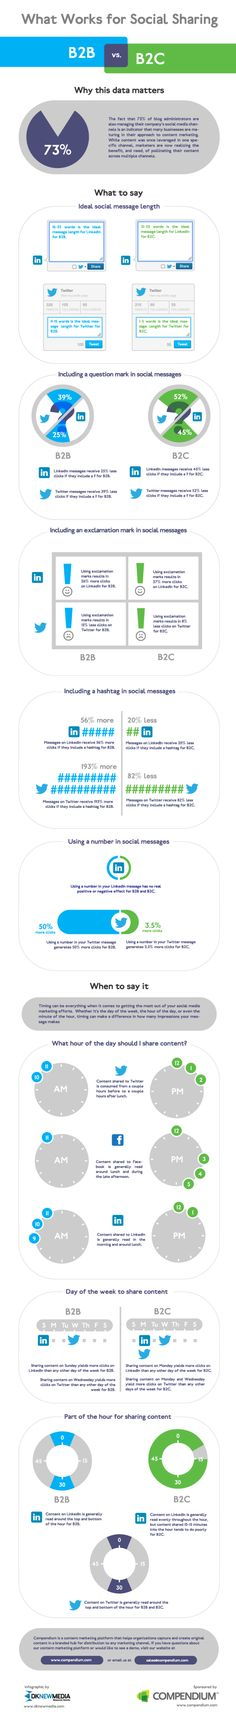 What Works for Social Sharing: B2B vs. B2C #Infographic